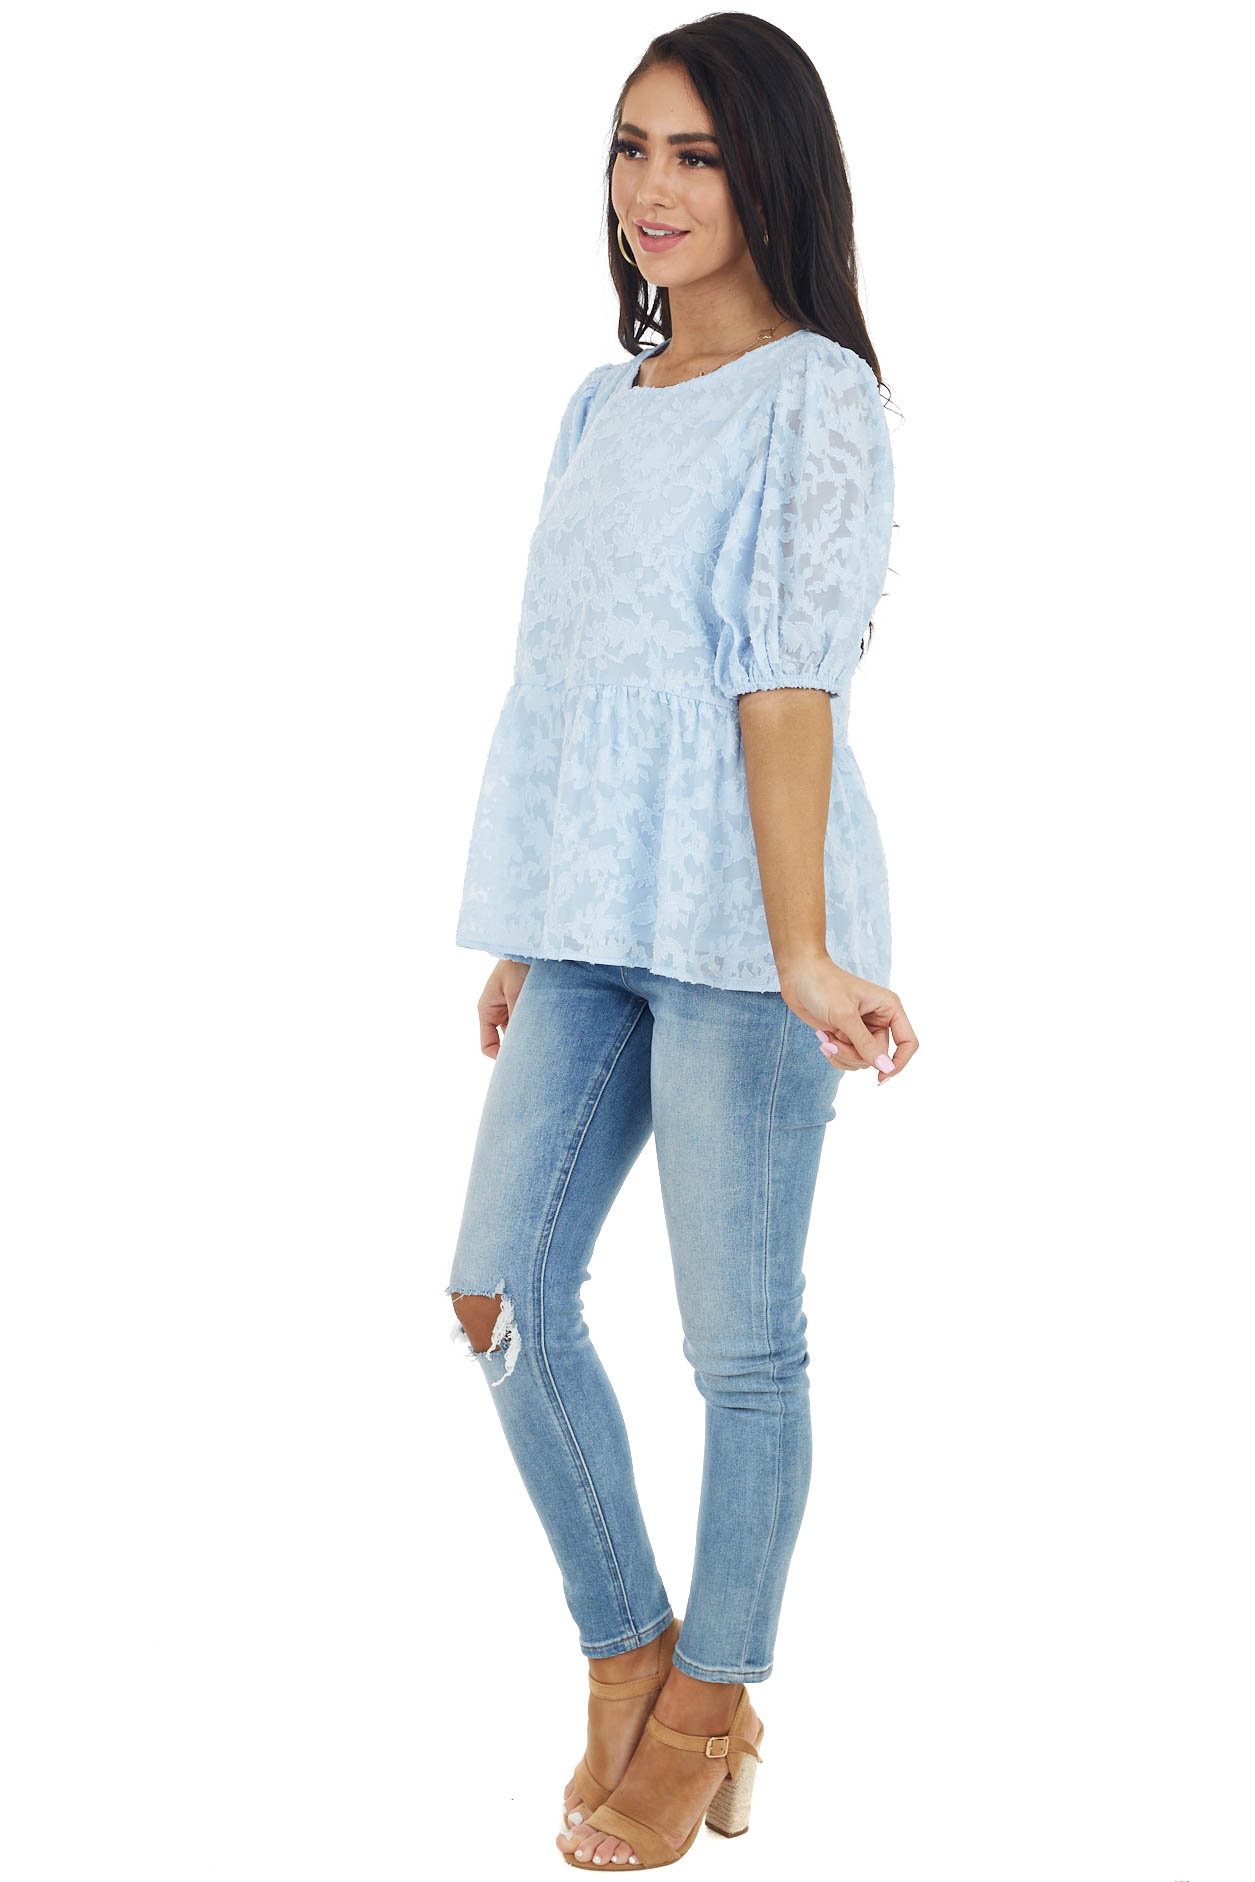 Powder Blue Floral Lace Peplum Top with Short Puff Sleeves